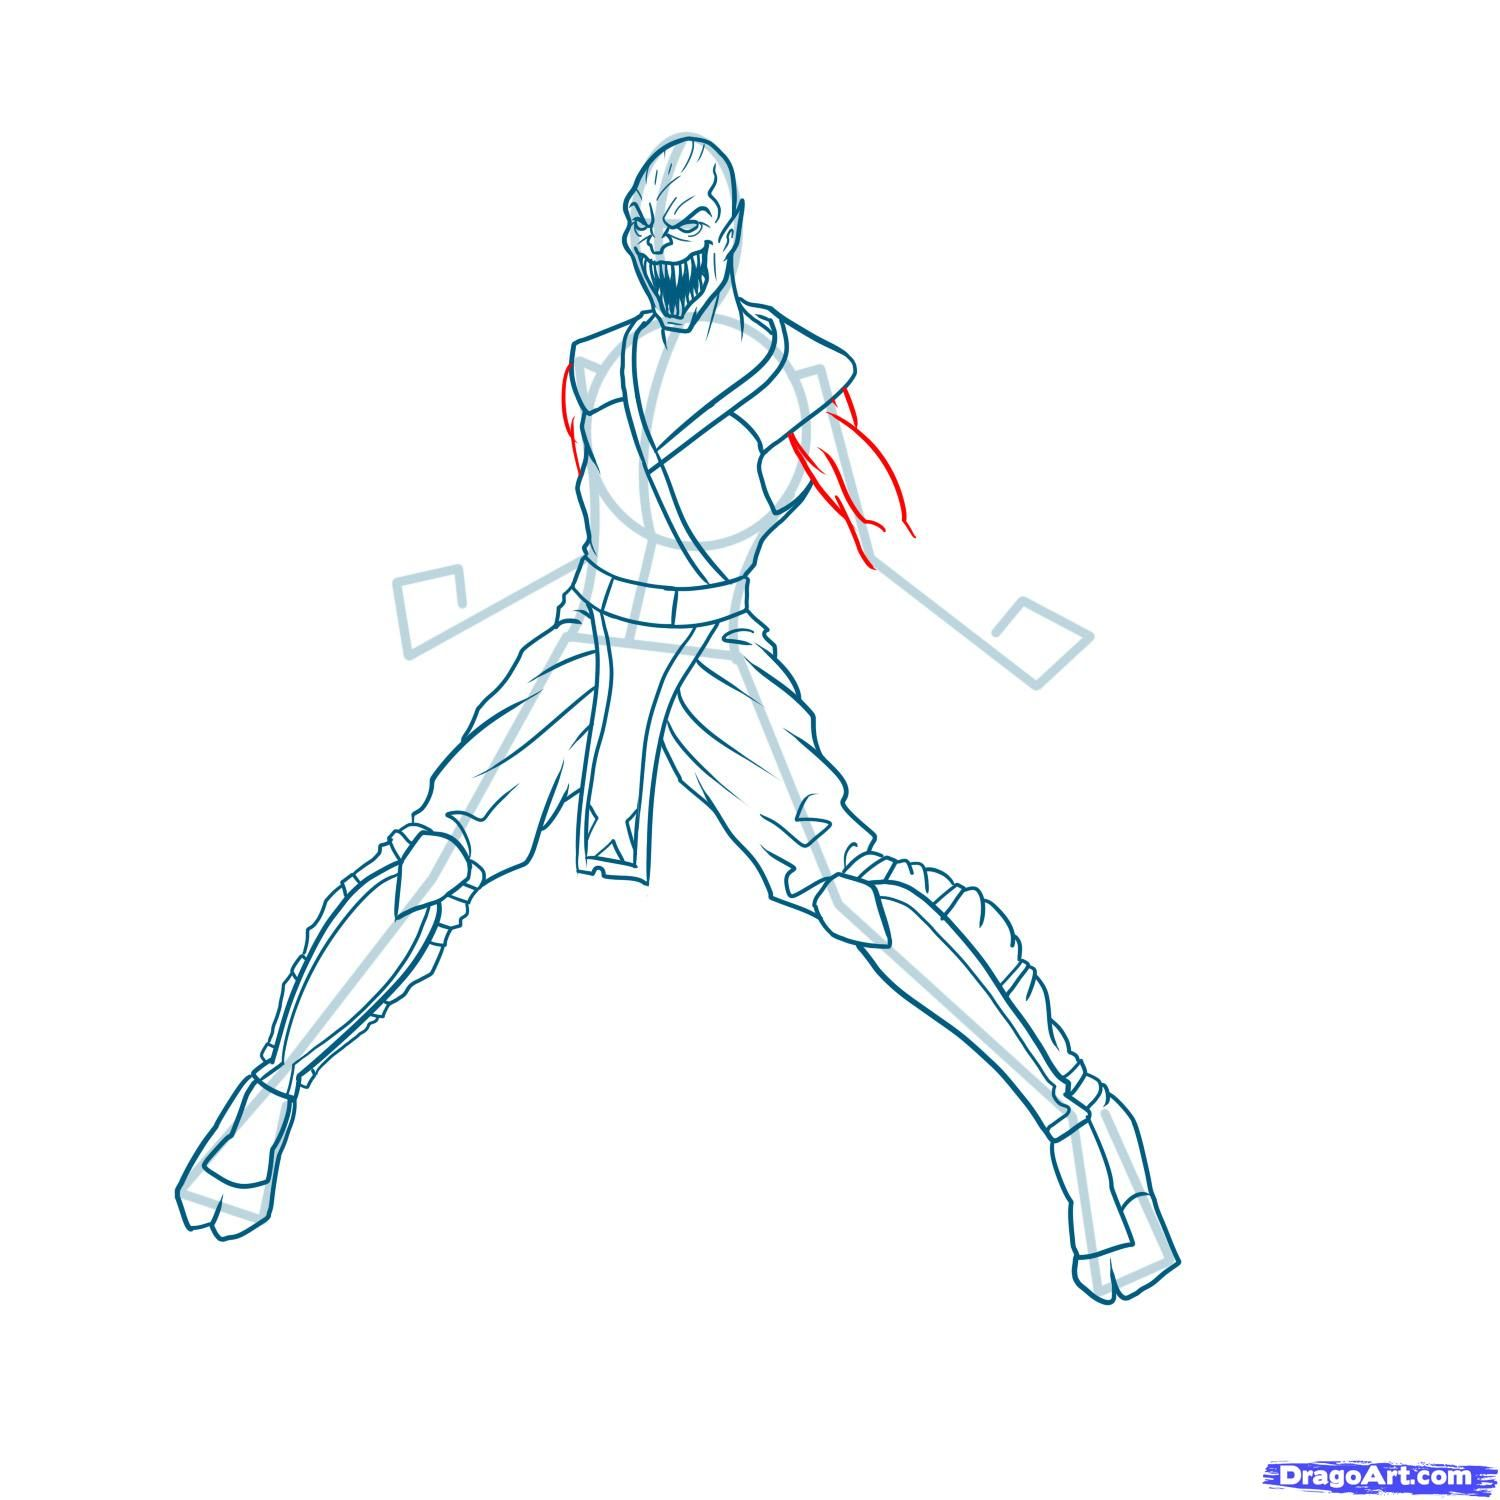 How to draw the Scorpion to the utmost from Mortal Kombat with a pencil step by step 13